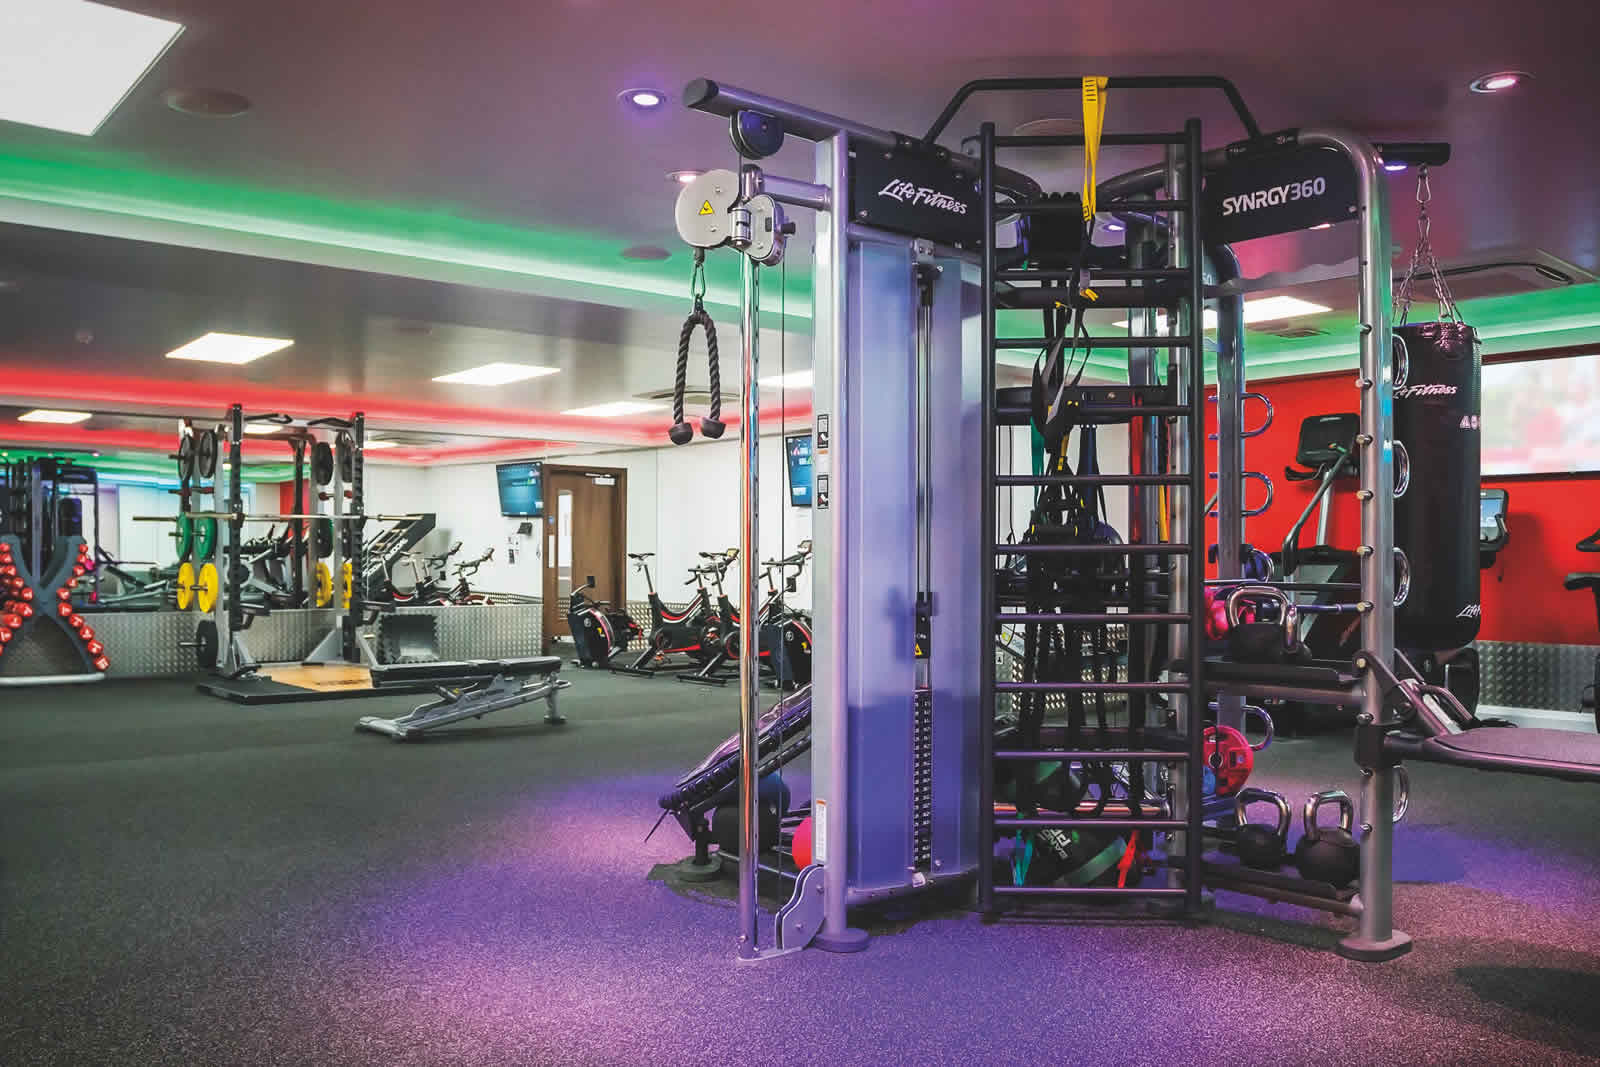 Kings Premier Health Club Guernsey